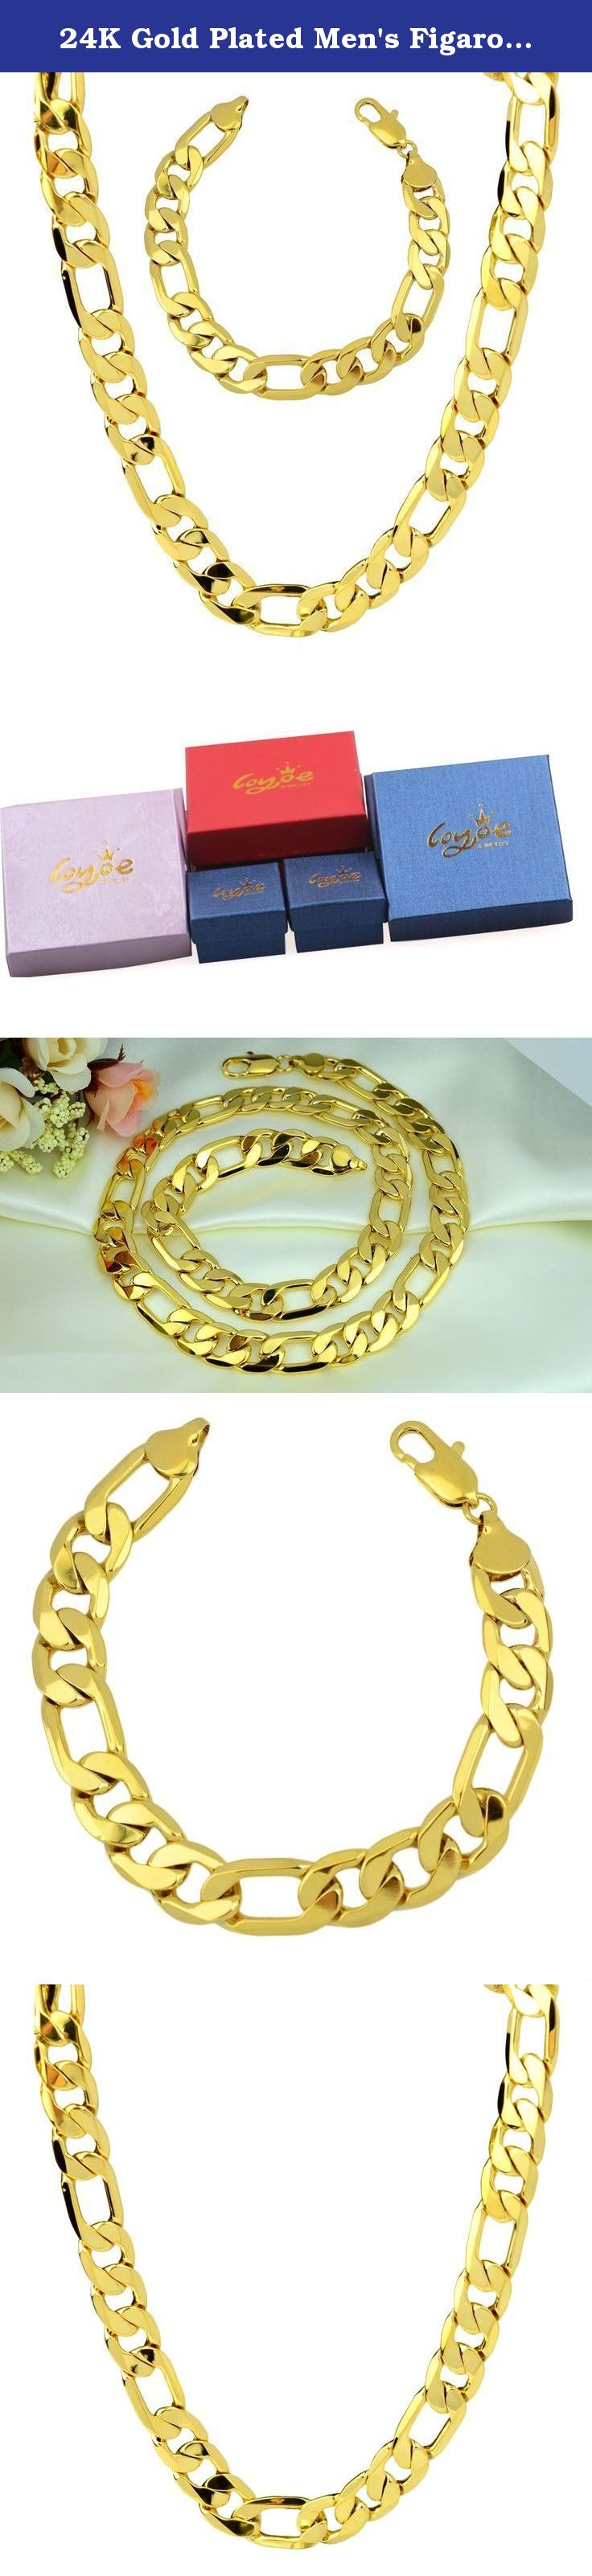 "24K Gold Plated Men's Figaro Chain Bracelet 9""and Necklace 24"" Jewelry Set 136g,12mm. Yellow gold plated necklace bracelet sets solid curb chain jewelry sets necklace size: 600mmx12mm 24"" bracelet size: 230mmx12mm 9"" weight:136g included 1 pcs necklace + 1pcs bracelet weight jewelry set."